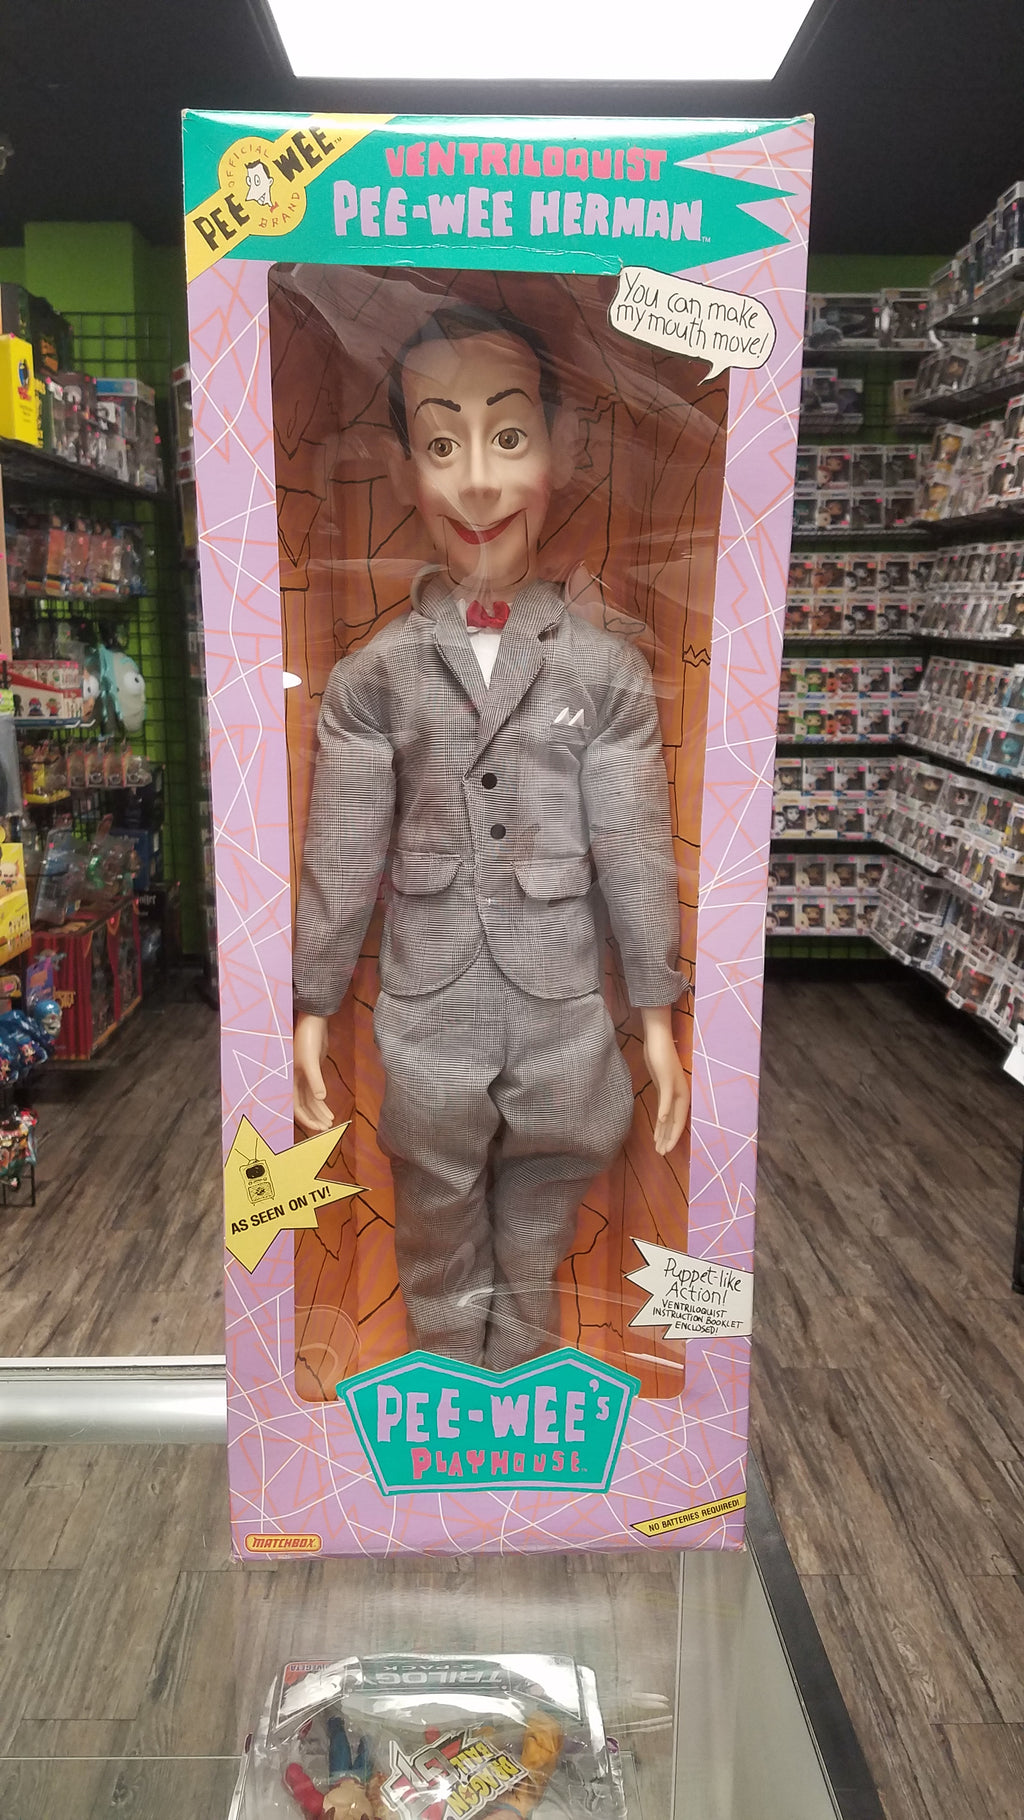 MATCHBOX Pee-Wee's Playhouse, Pee-Wee Herman Ventriloquist Dummy